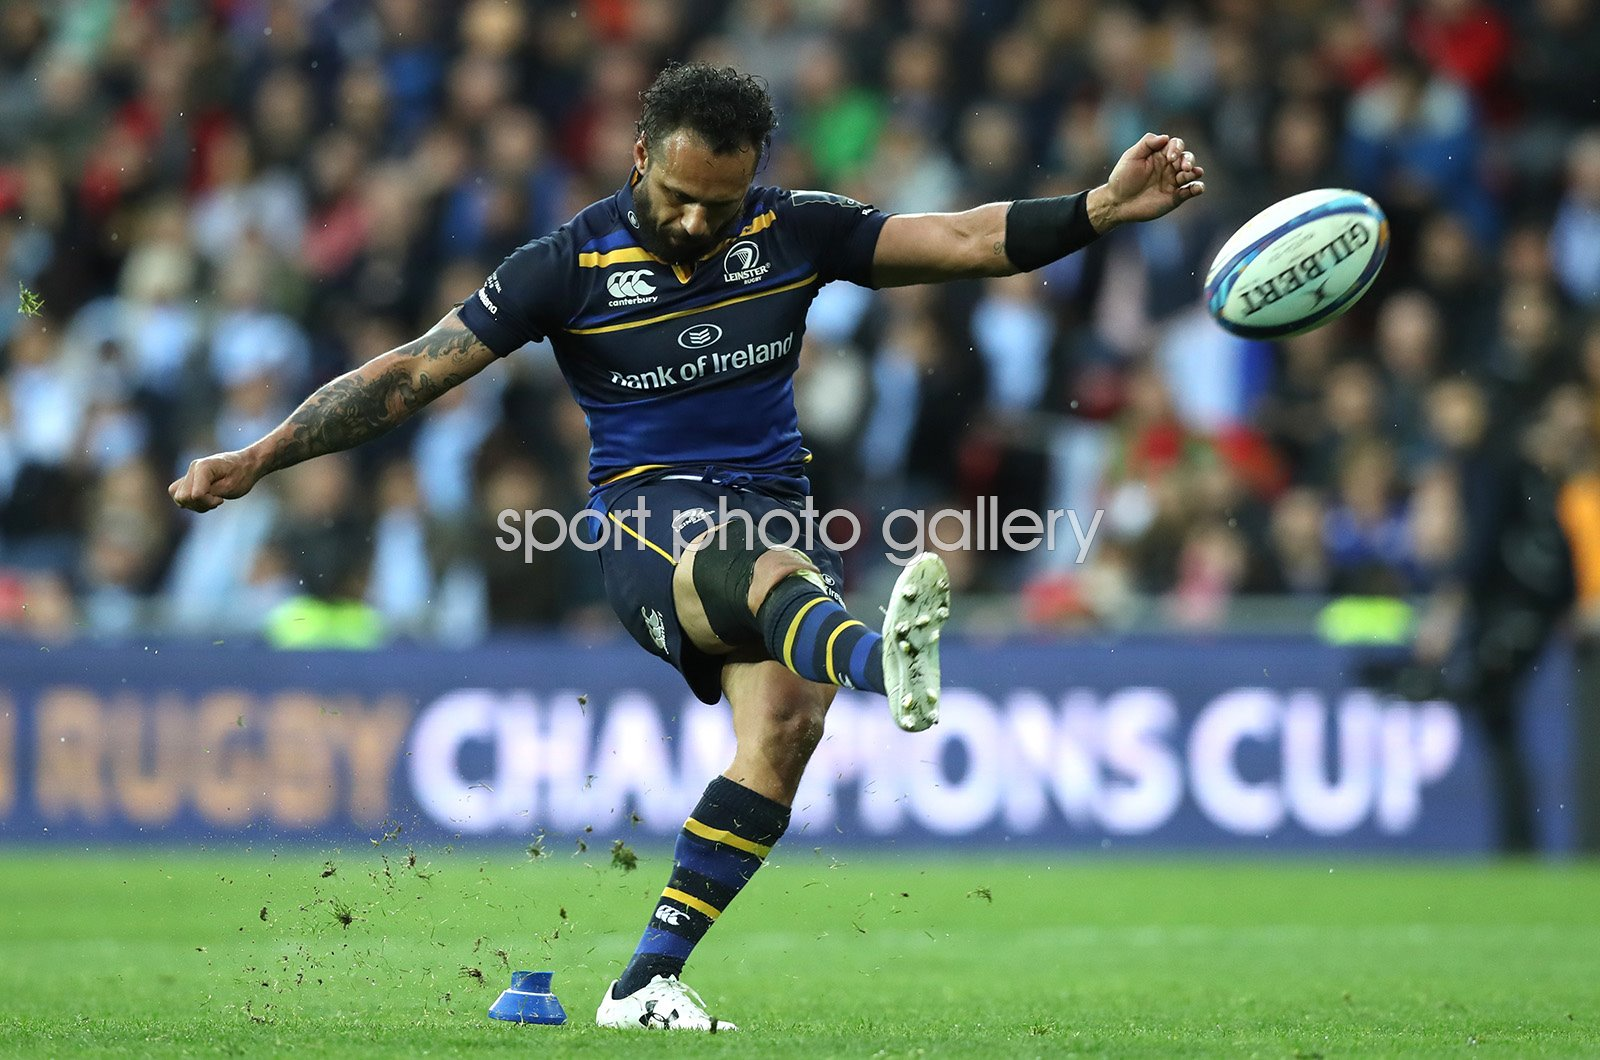 Isa Nacewa Leinster European Rugby Champions Cup Final 2018